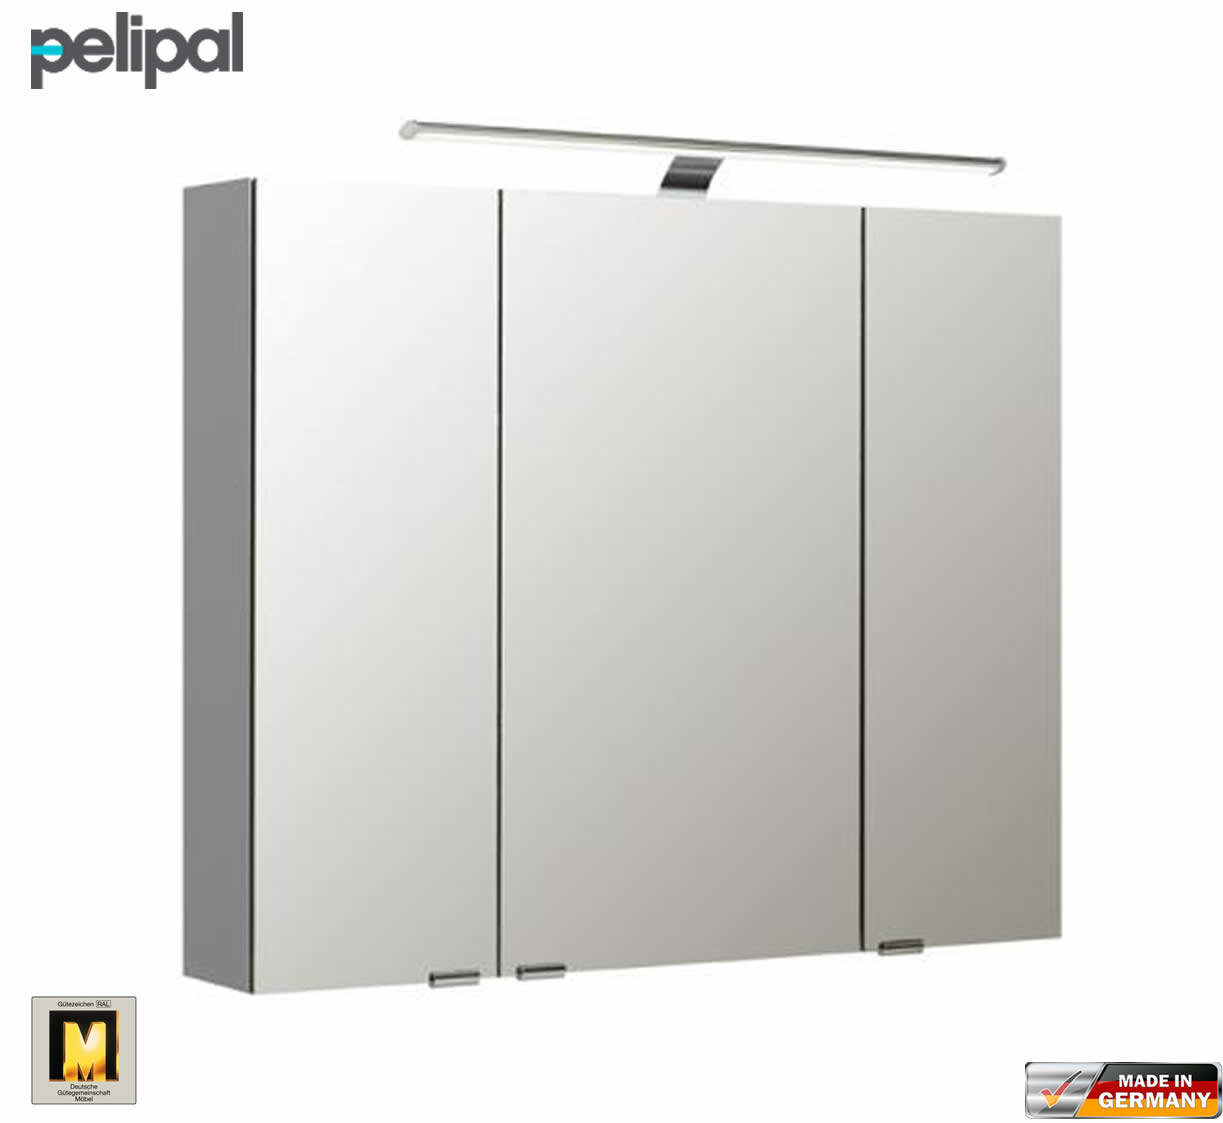 pelipal neutraler spiegelschrank s5 90 cm mit led aufbauleuchte impulsbad. Black Bedroom Furniture Sets. Home Design Ideas